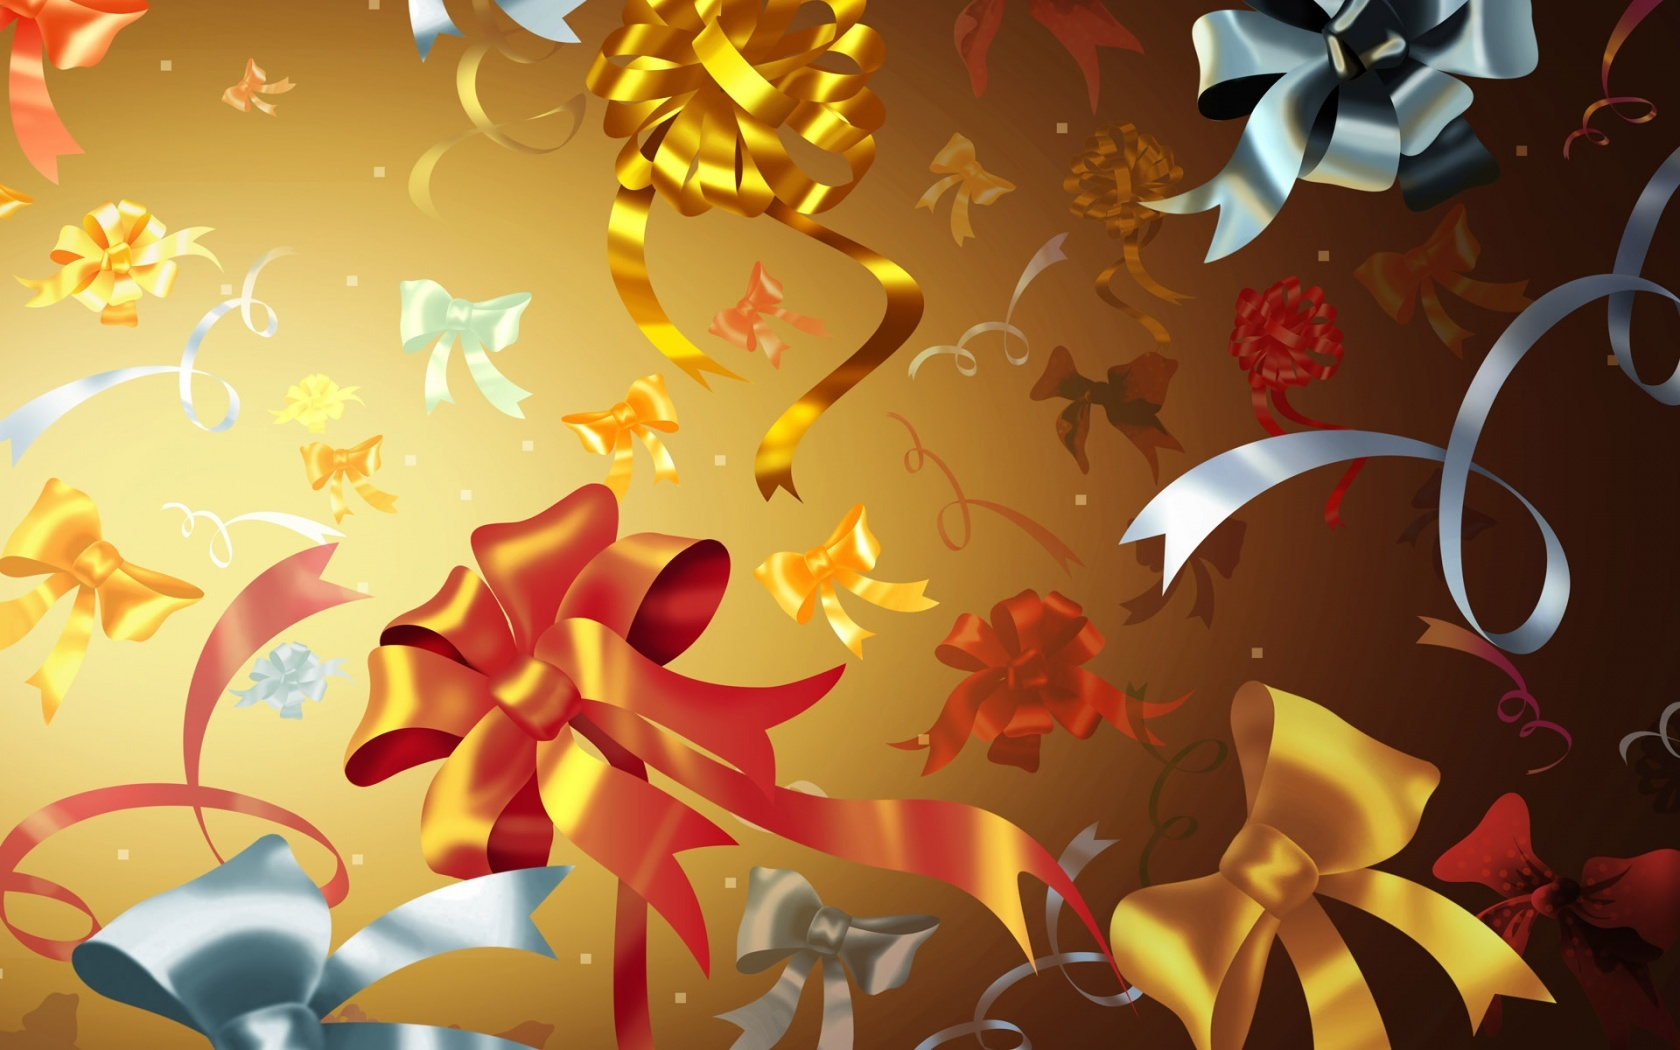 abstract wallpapers hd christmas 2